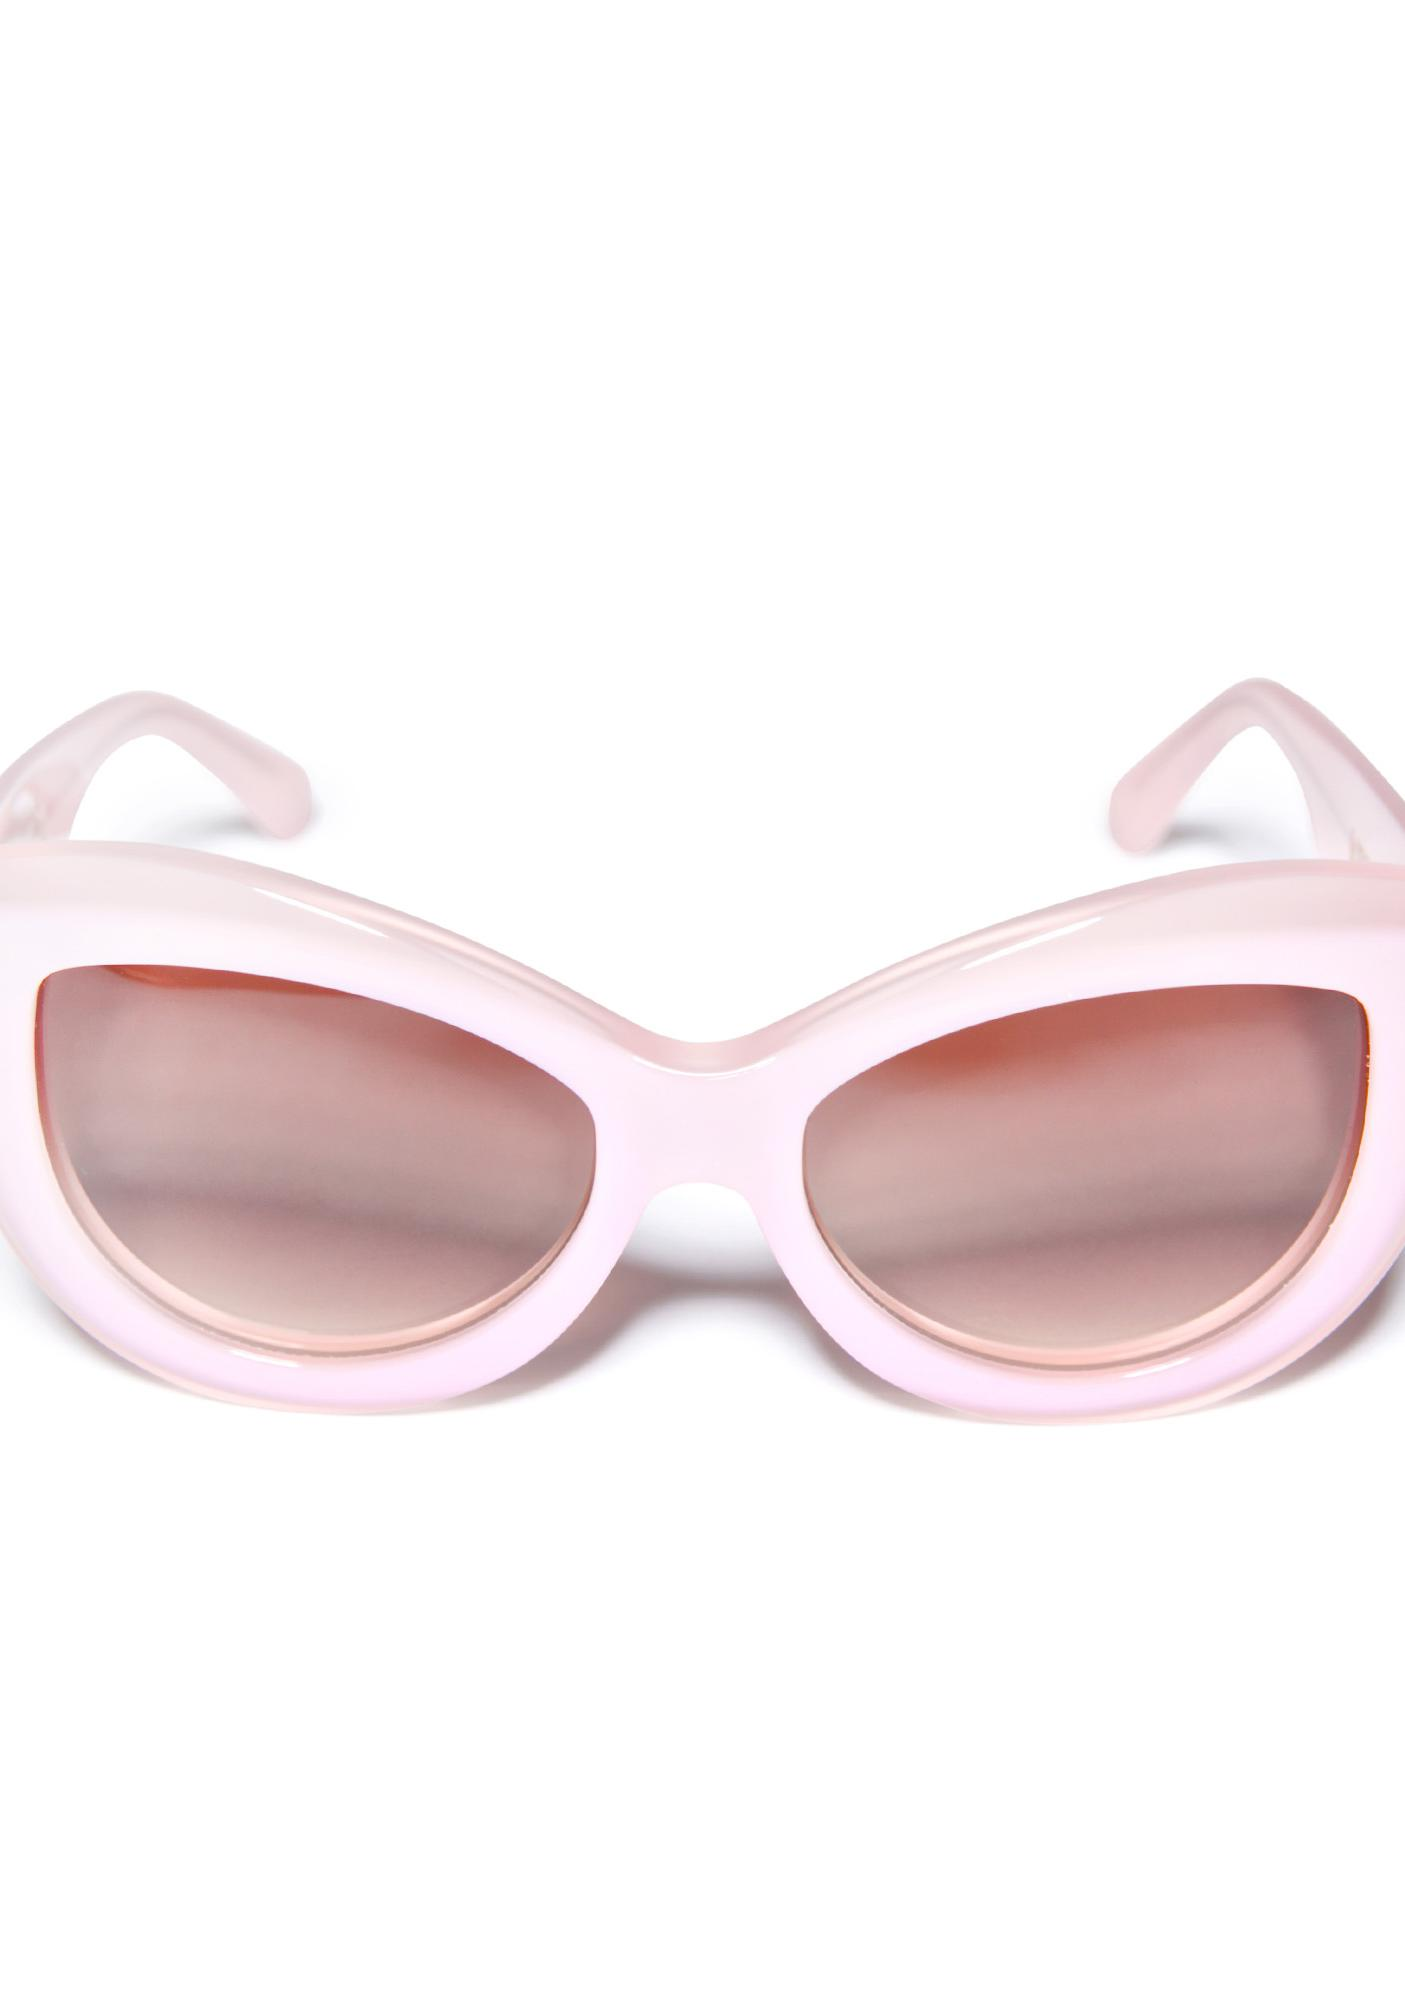 Wildfox Couture Kitten Sunglasses